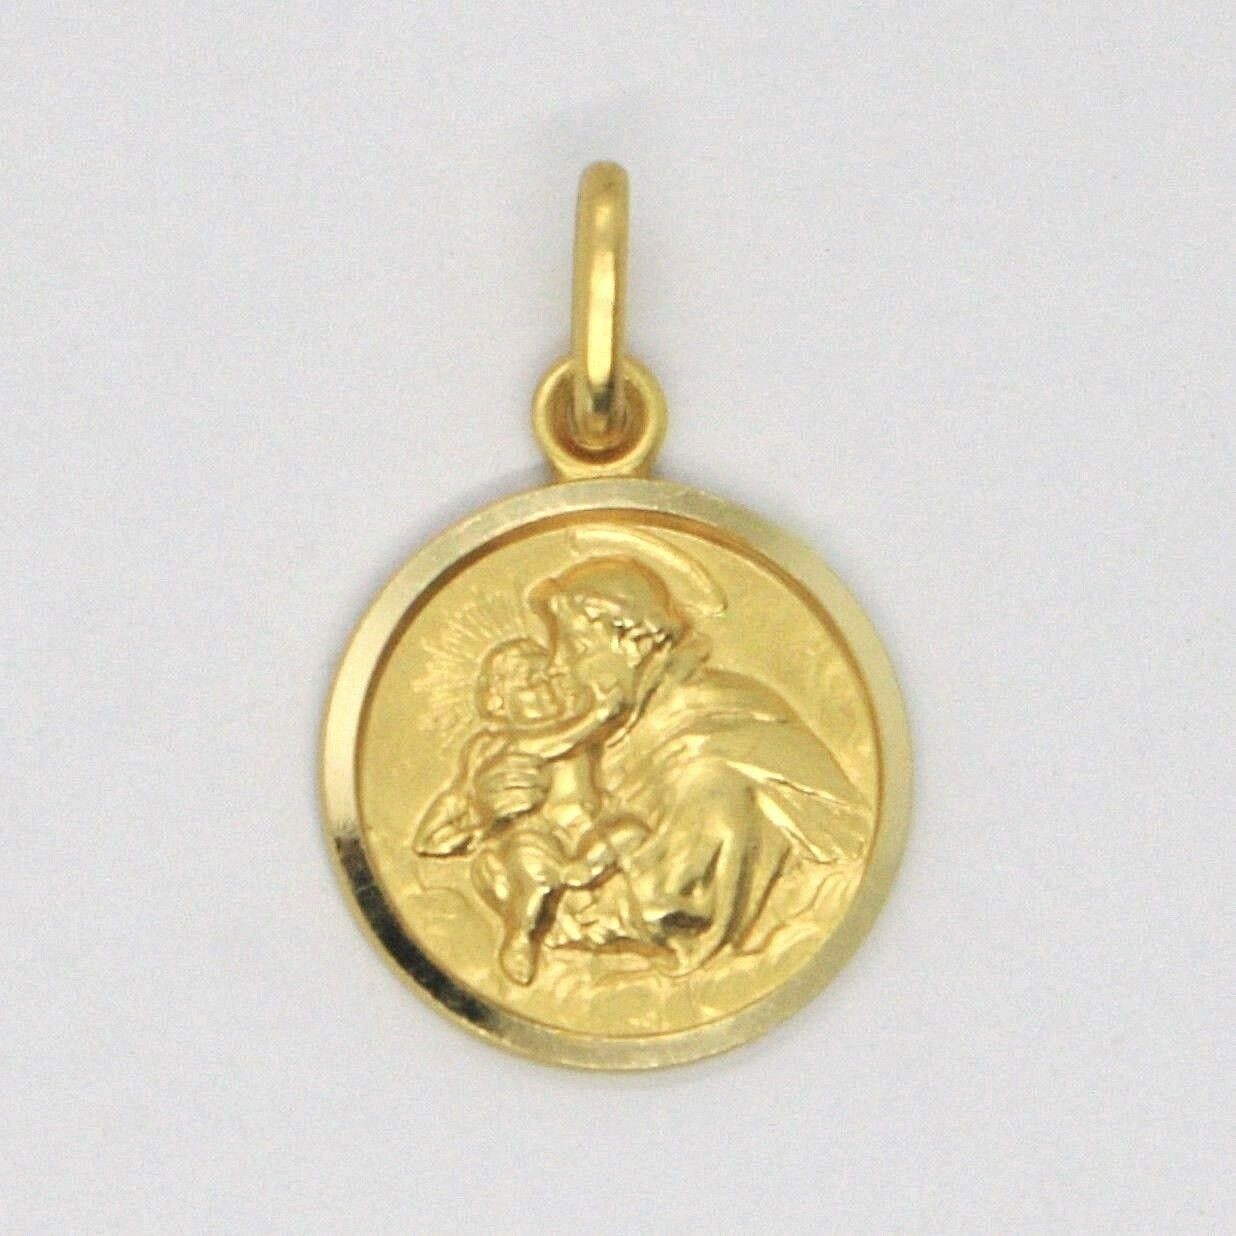 18K YELLOW GOLD ST SAINT ANTHONY PADUA SANT ANTONIO MEDAL MADE IN ITALY, 13 MM